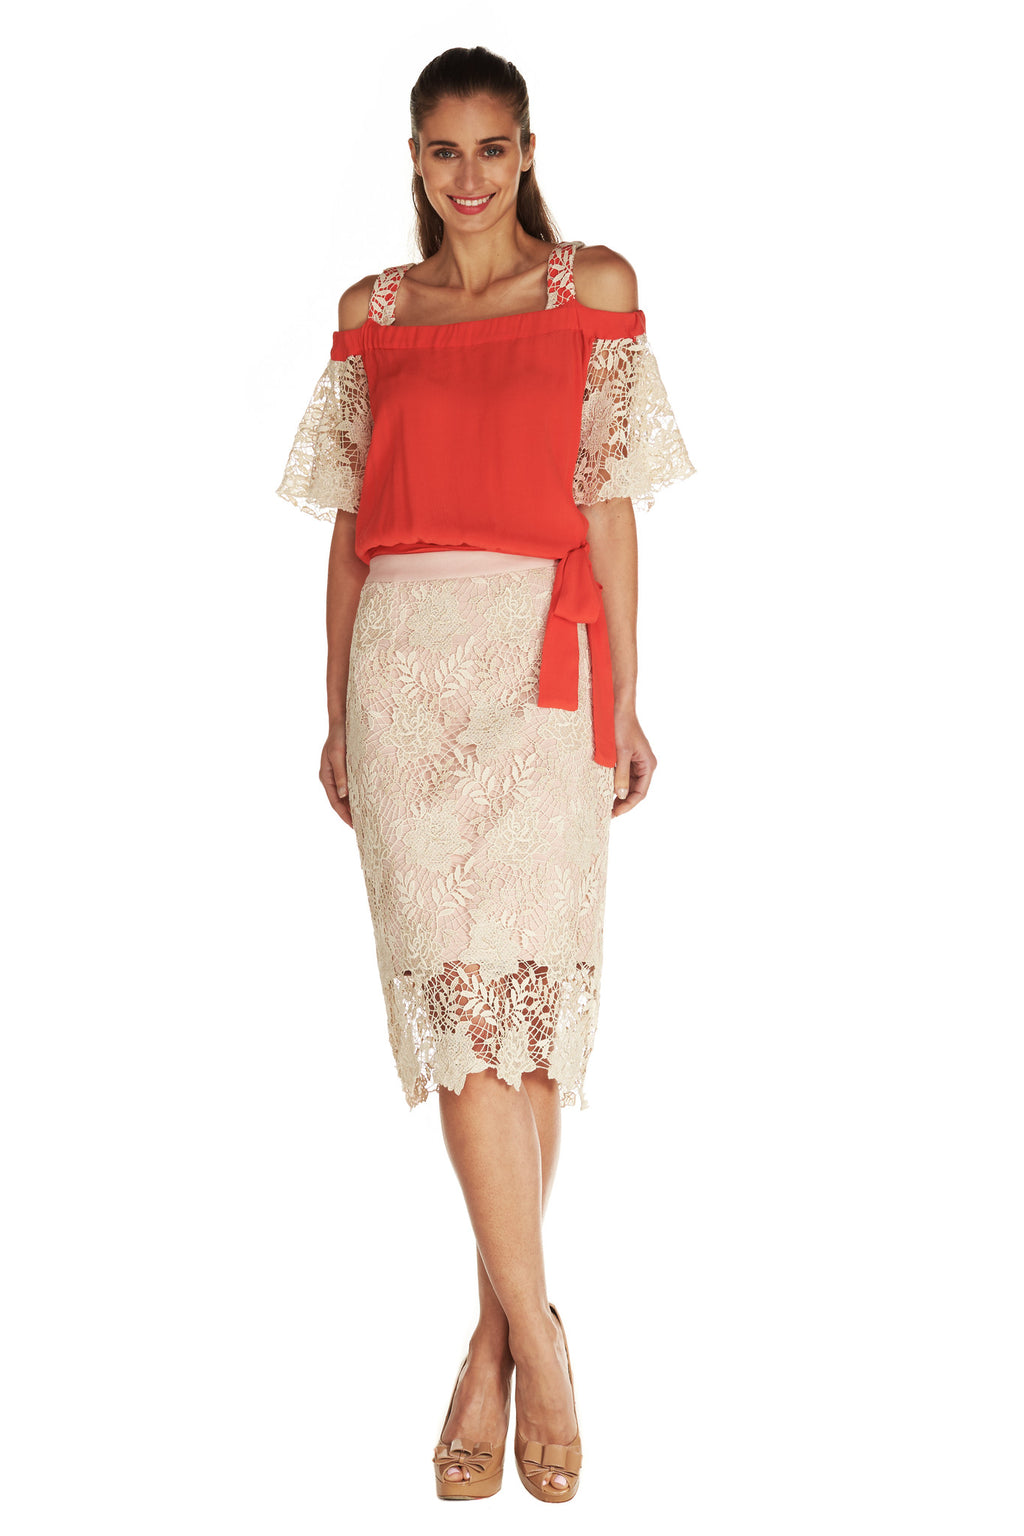 GWENYTH LACE PENCIL SKIRT - Kelly & Port